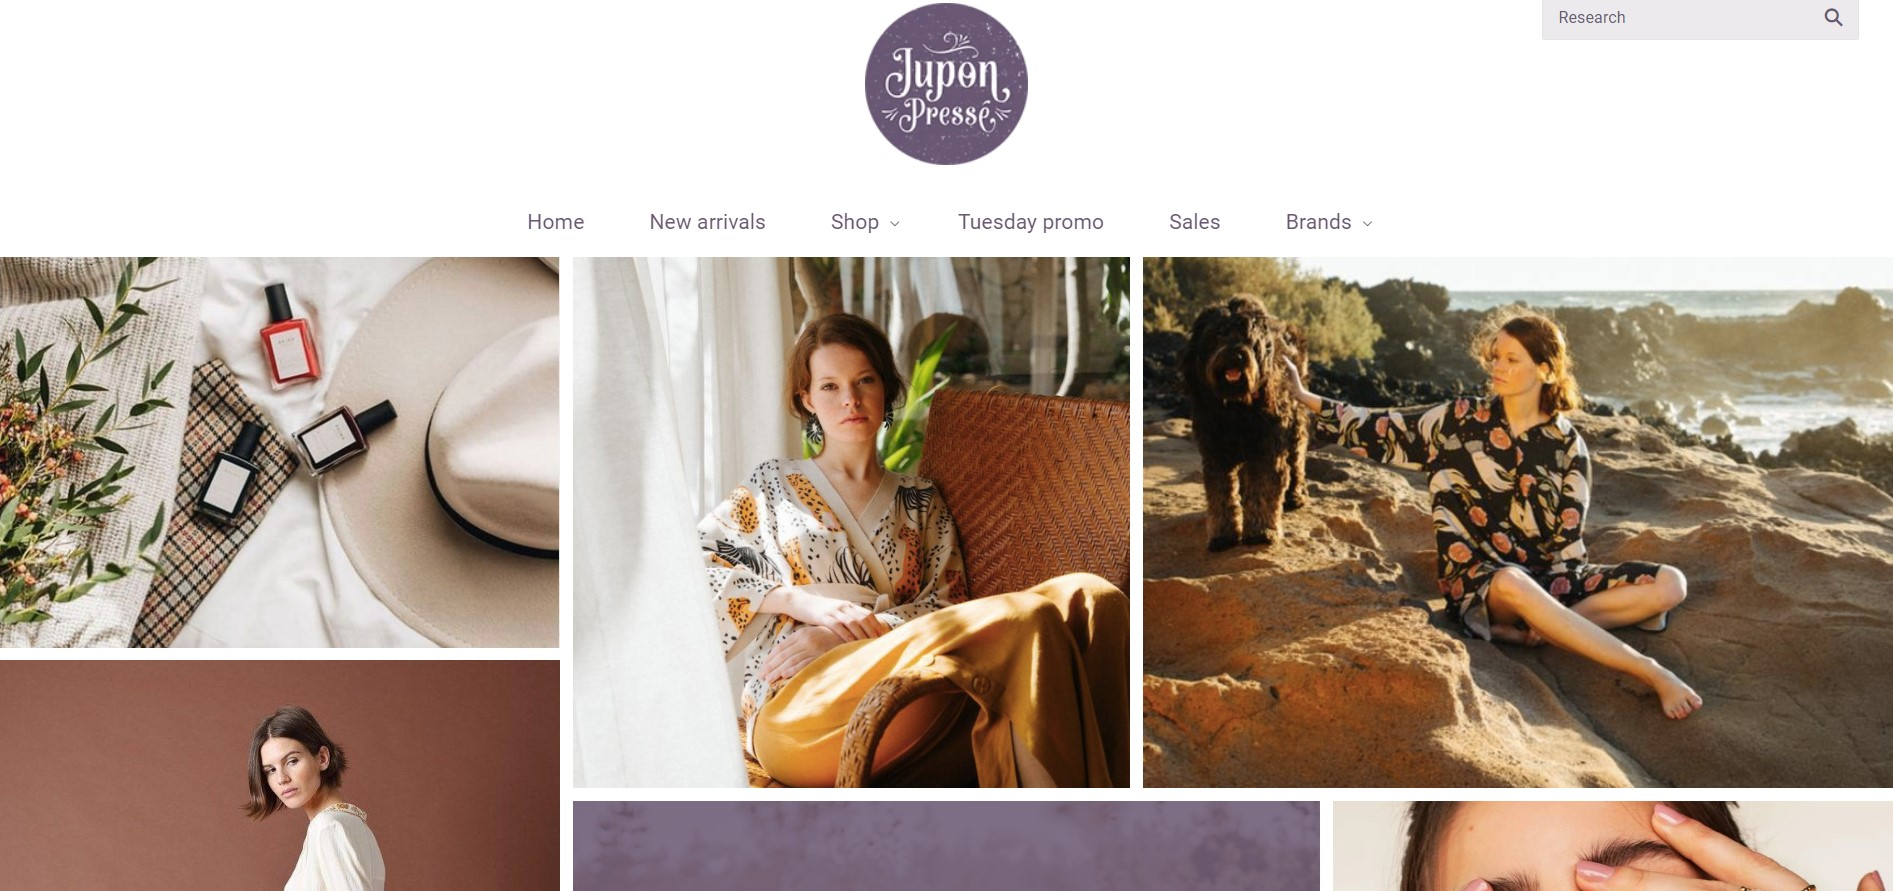 jupon presse women's clothing store in quebec